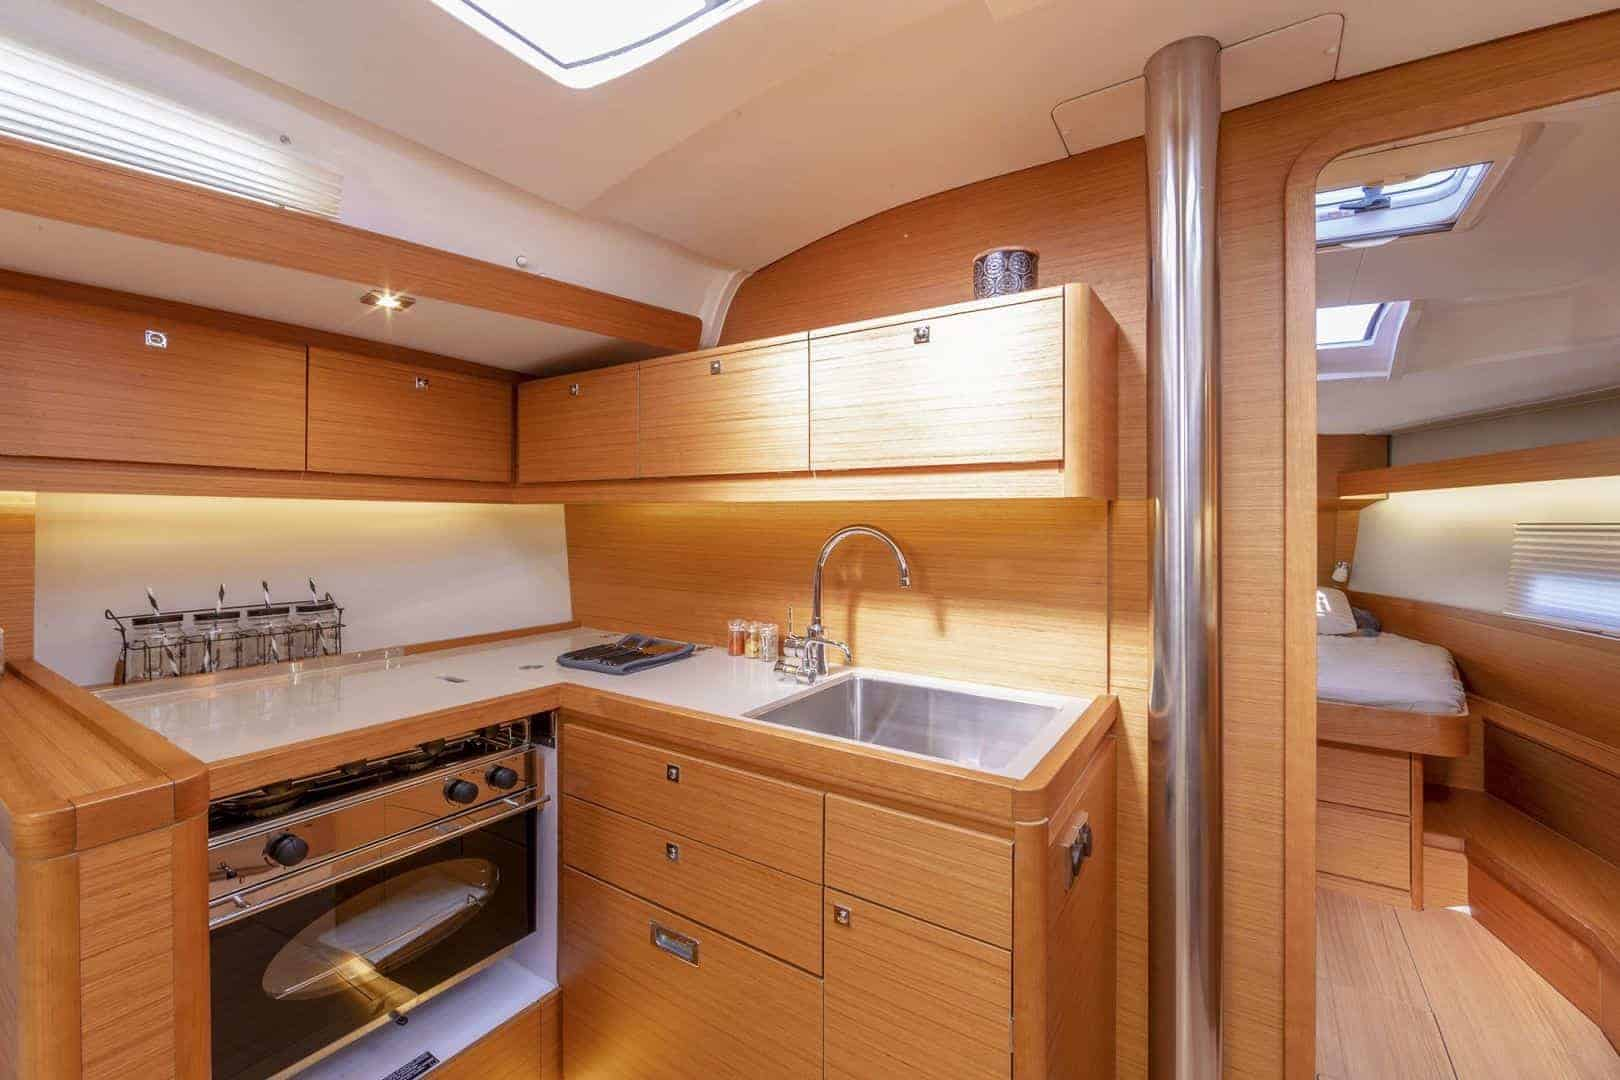 Dufour Grand Large 430's galley with beautifully designed sink, stove and countertop